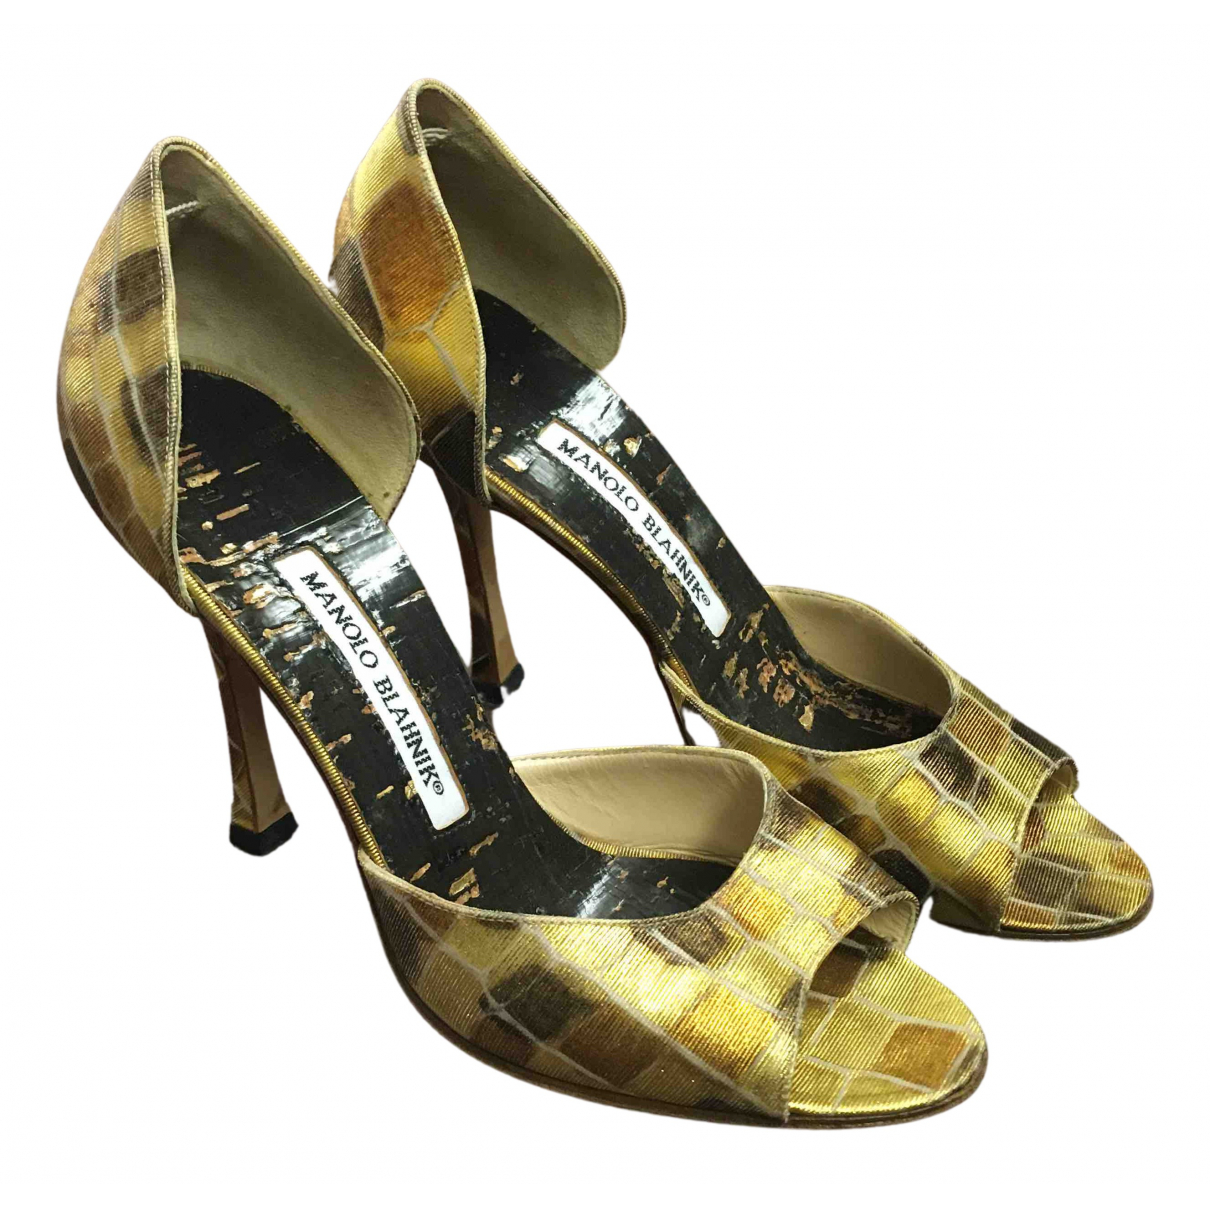 Manolo Blahnik N Gold Leather Heels for Women 36 EU